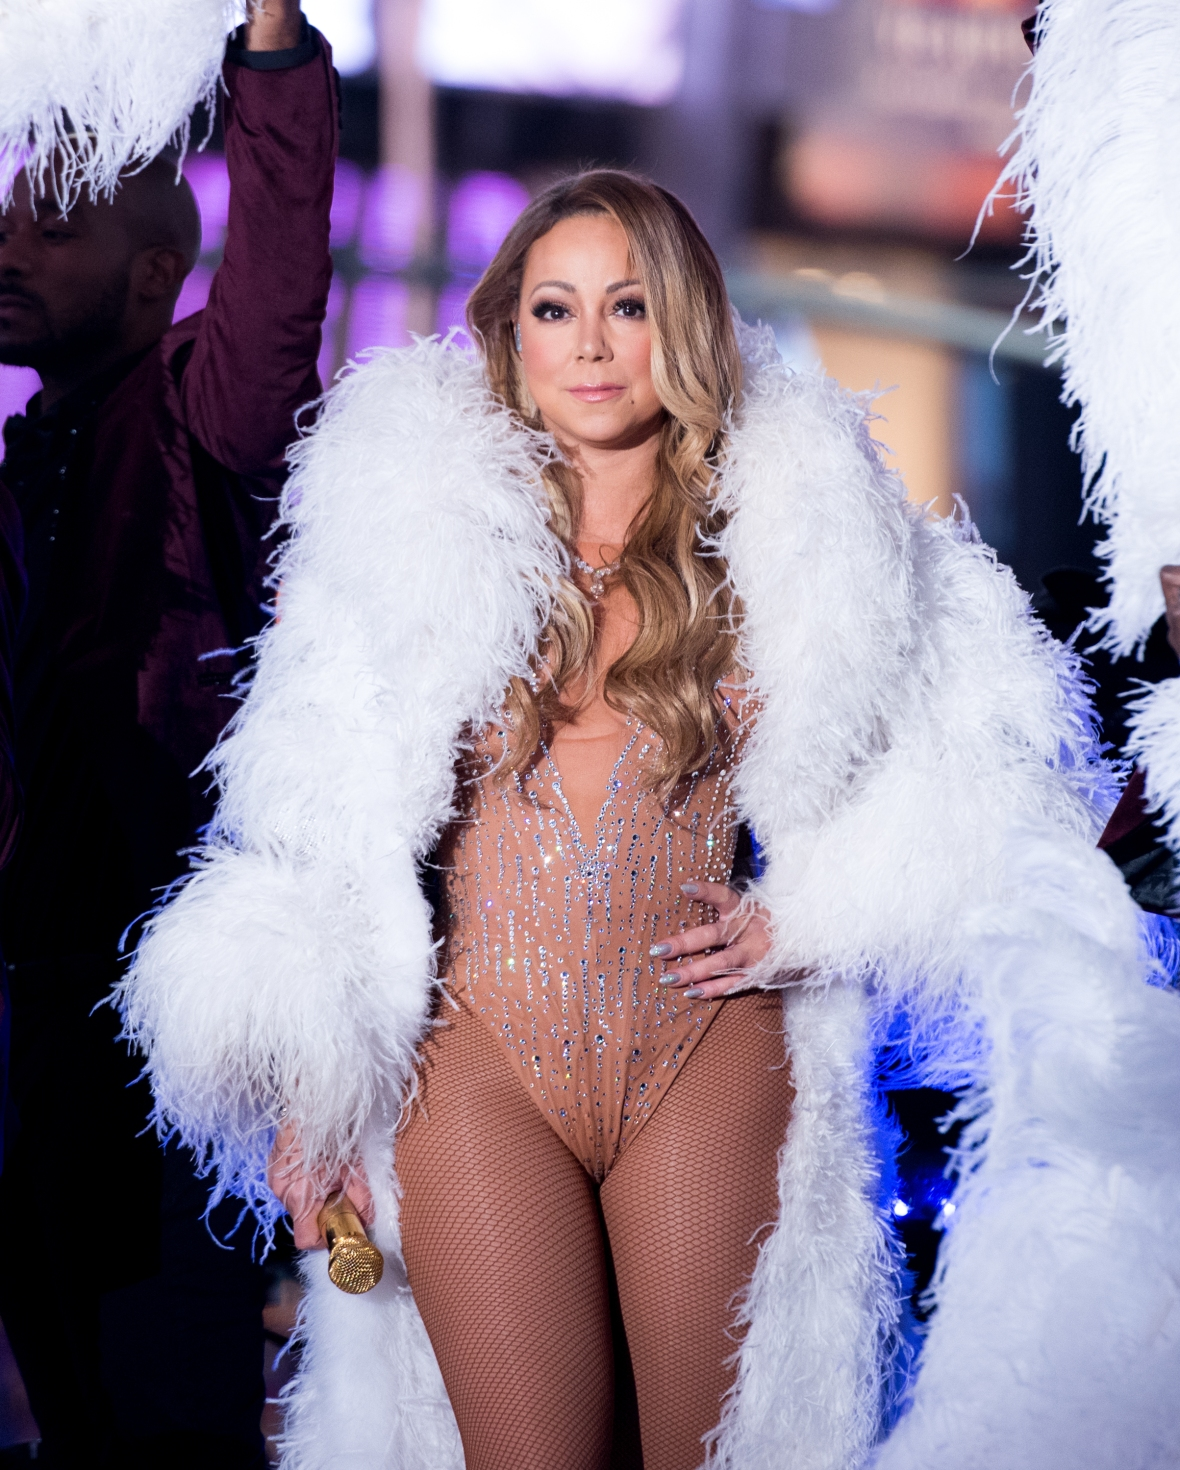 mariah carey new year's eve getty